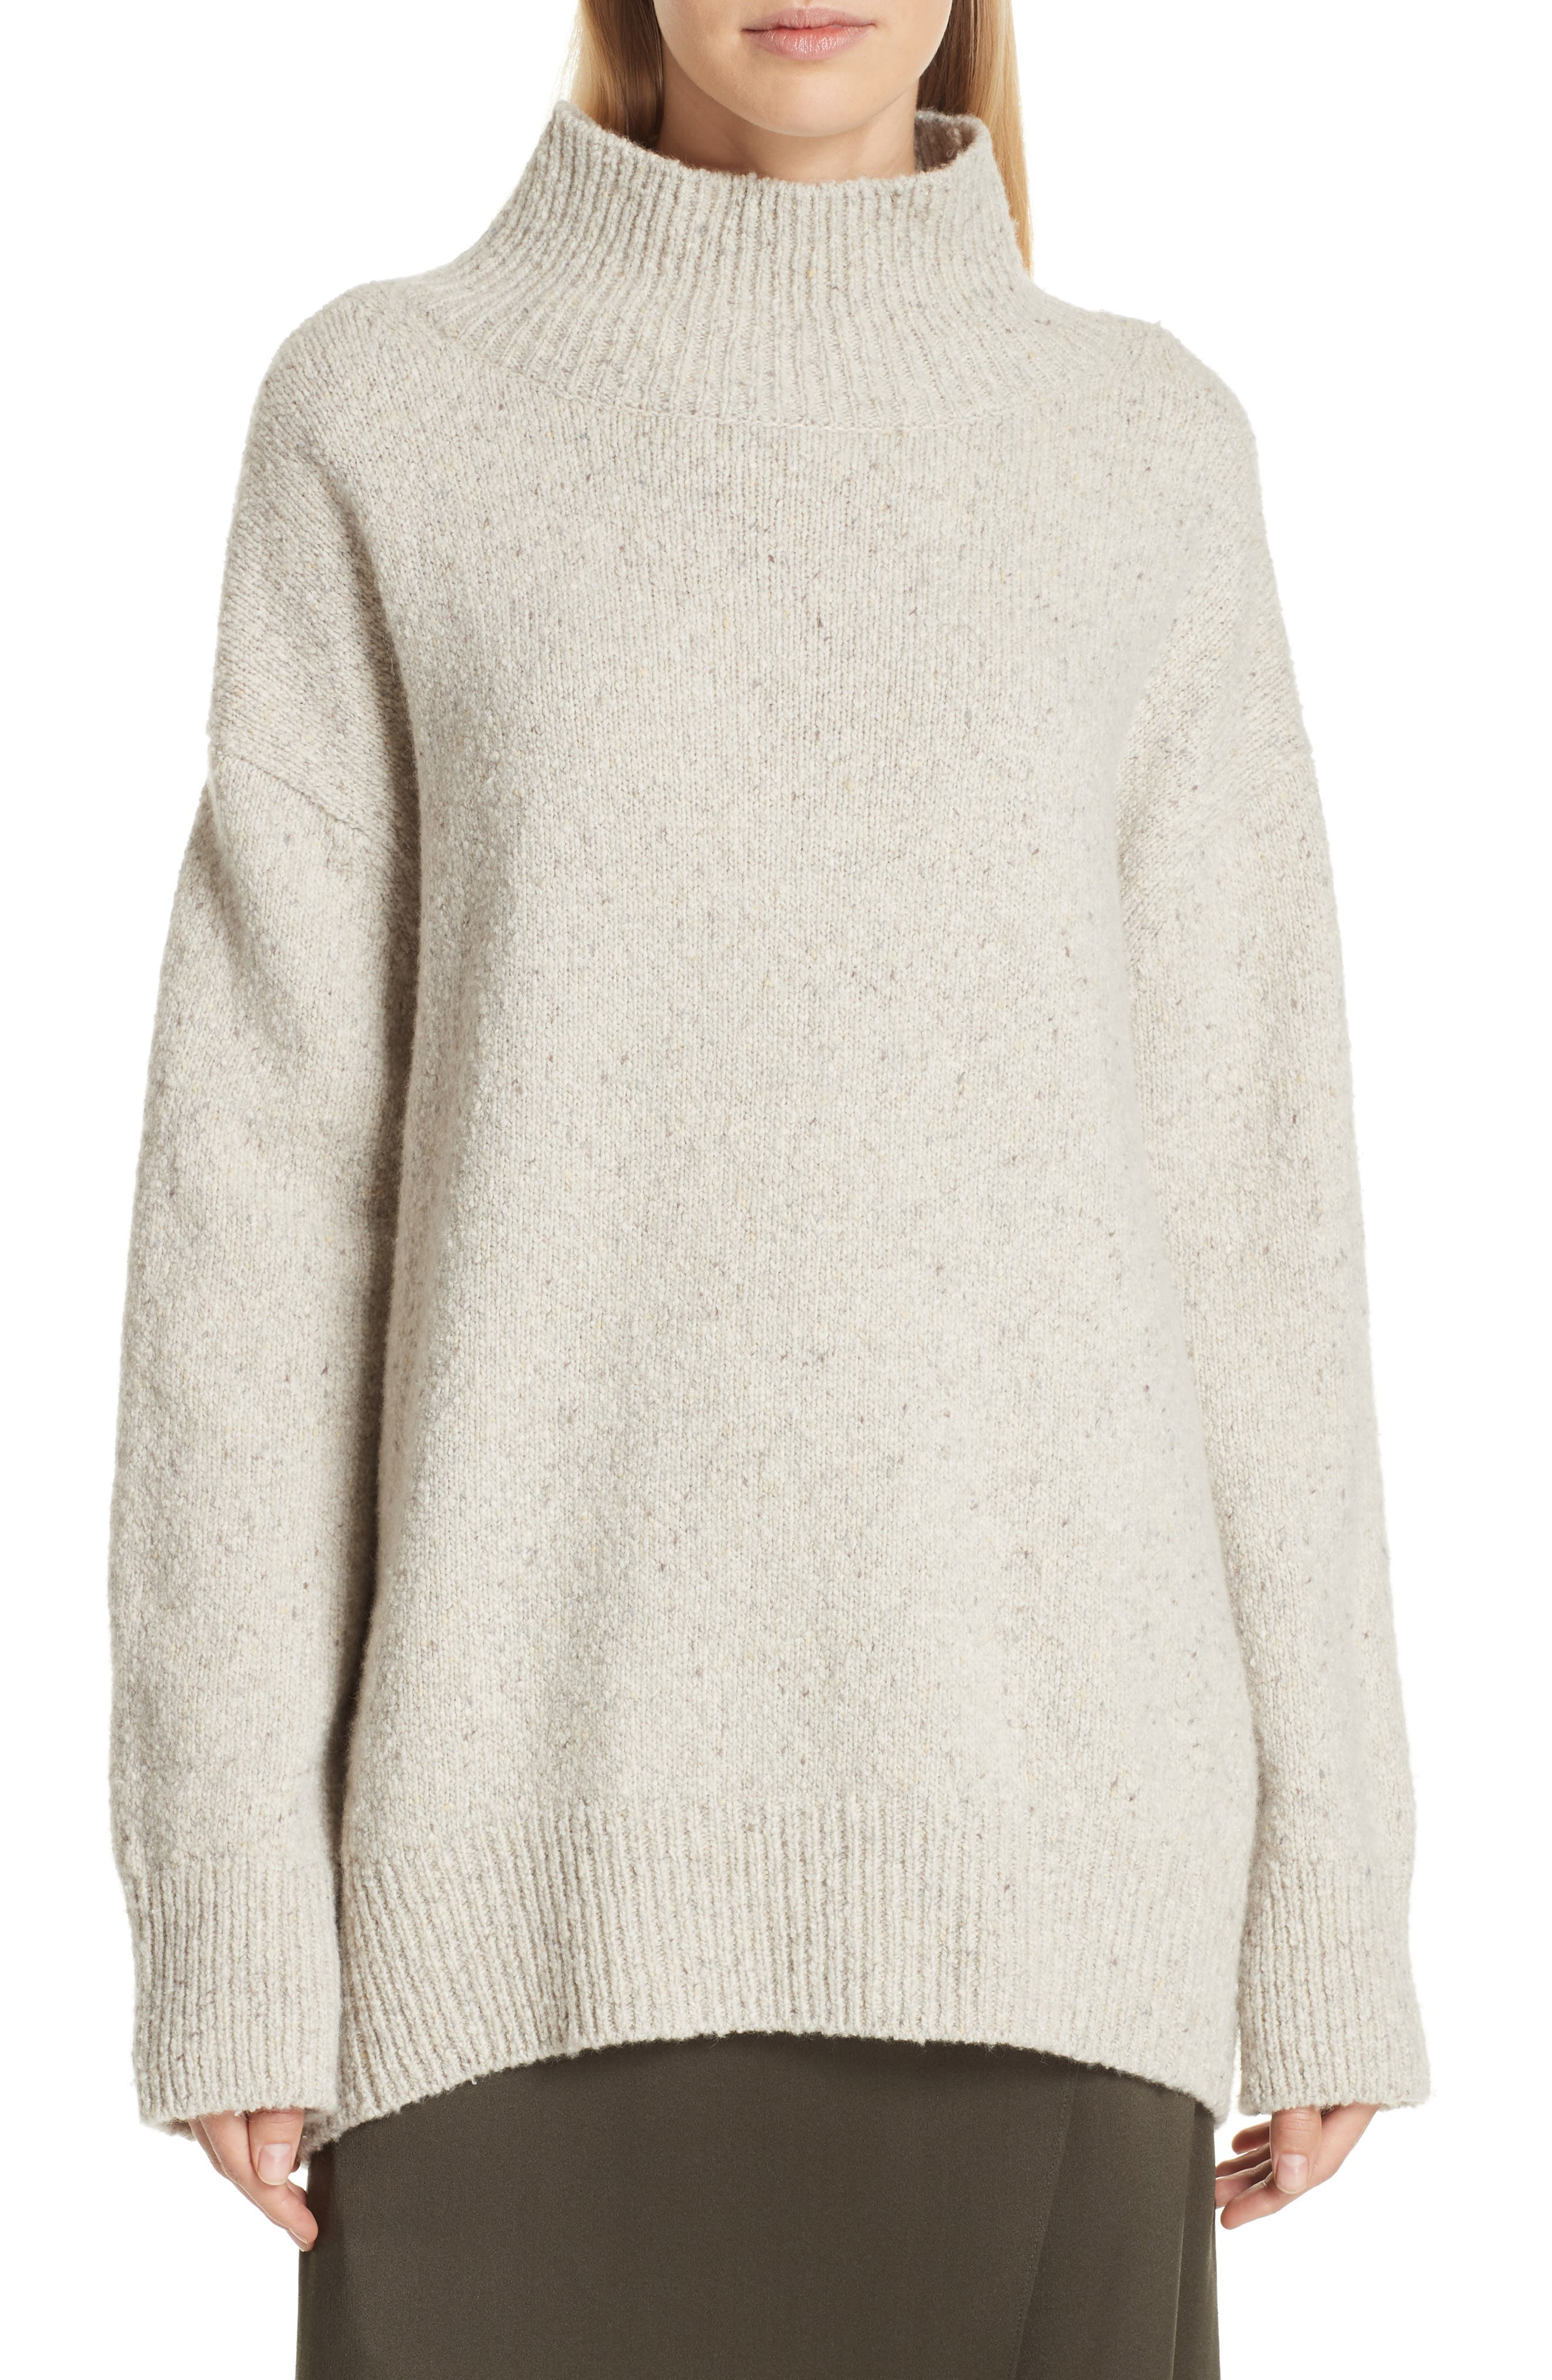 Oversize Cashmere Sweater,                         Main,                         color, BUTTERMILK